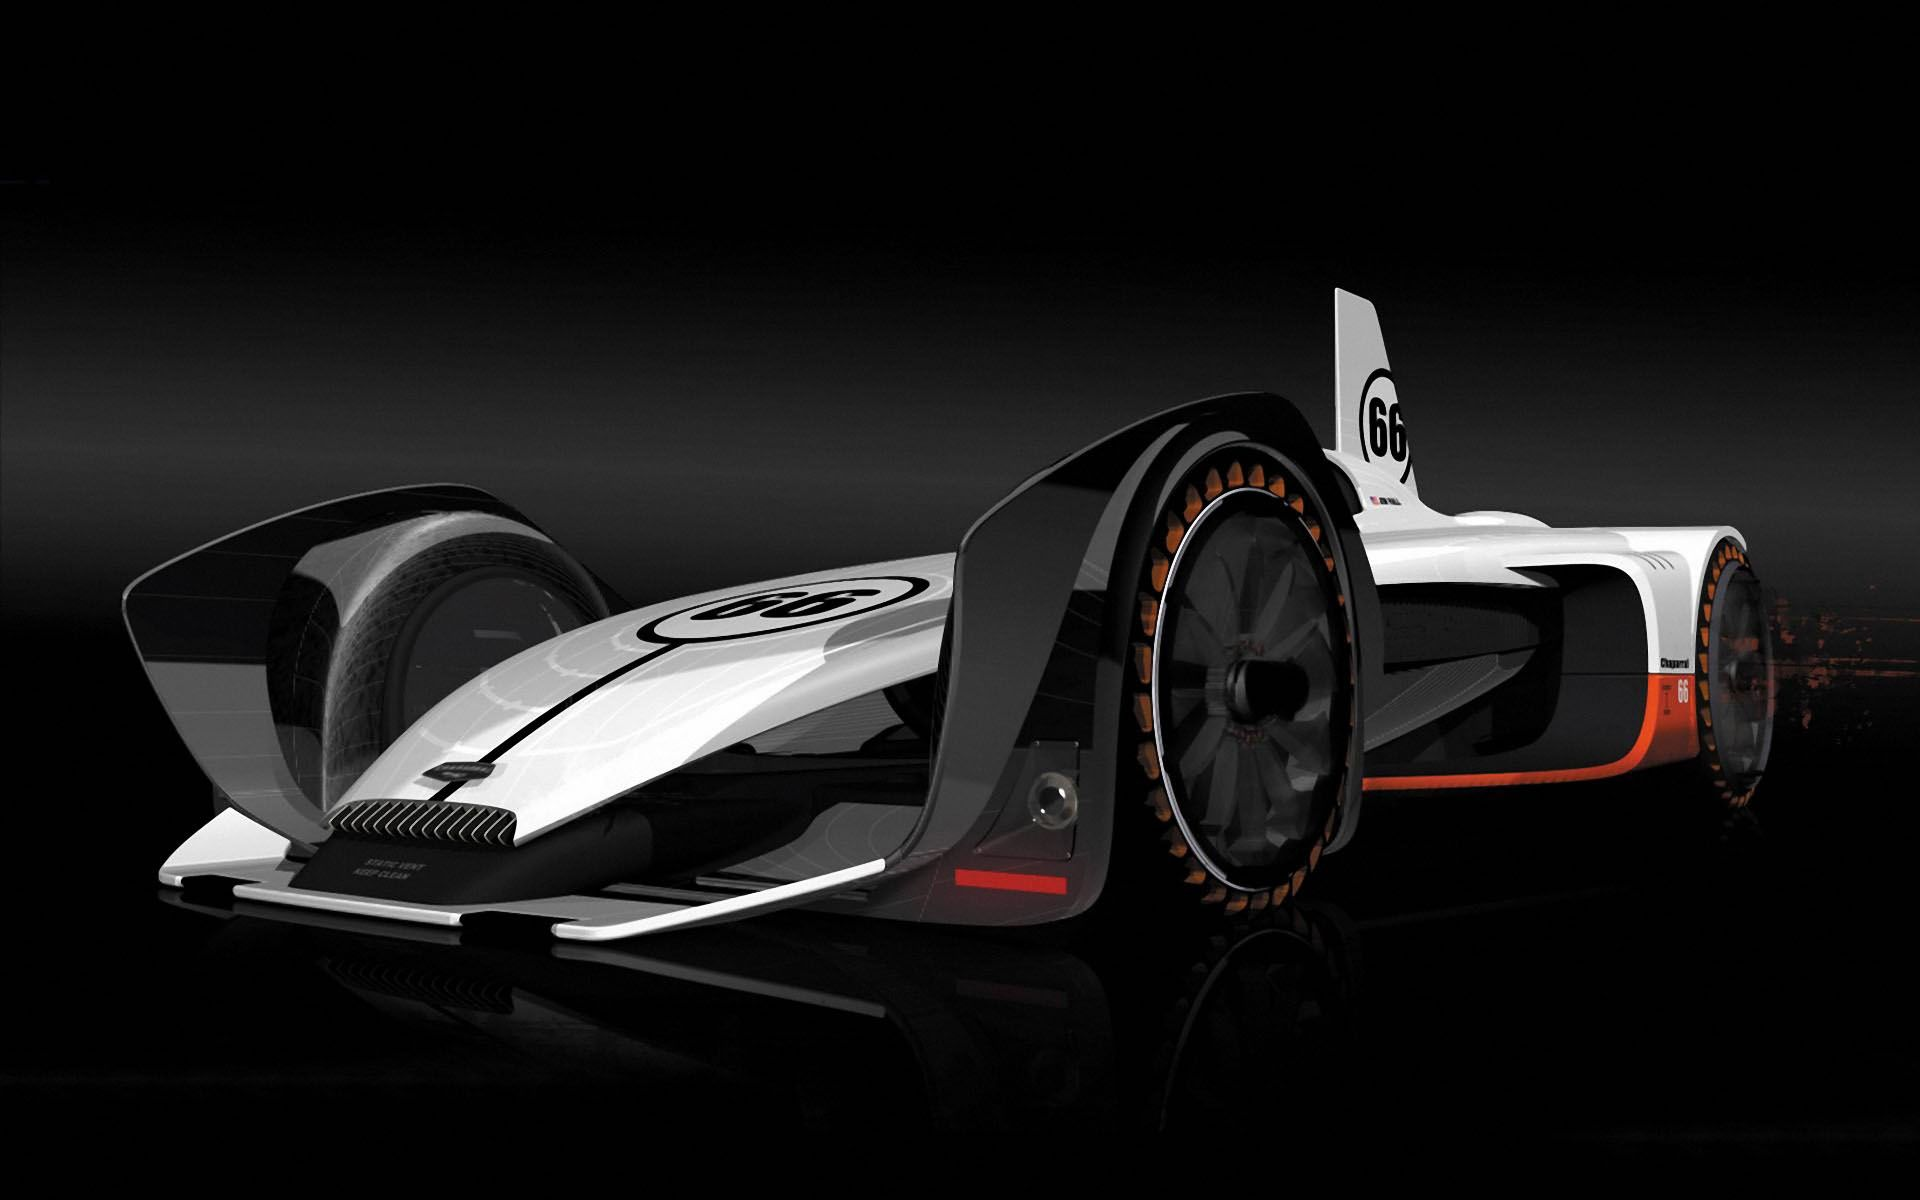 f1 new car releaseFuture Cars New Concepts And Upcoming Vehicles New car Release